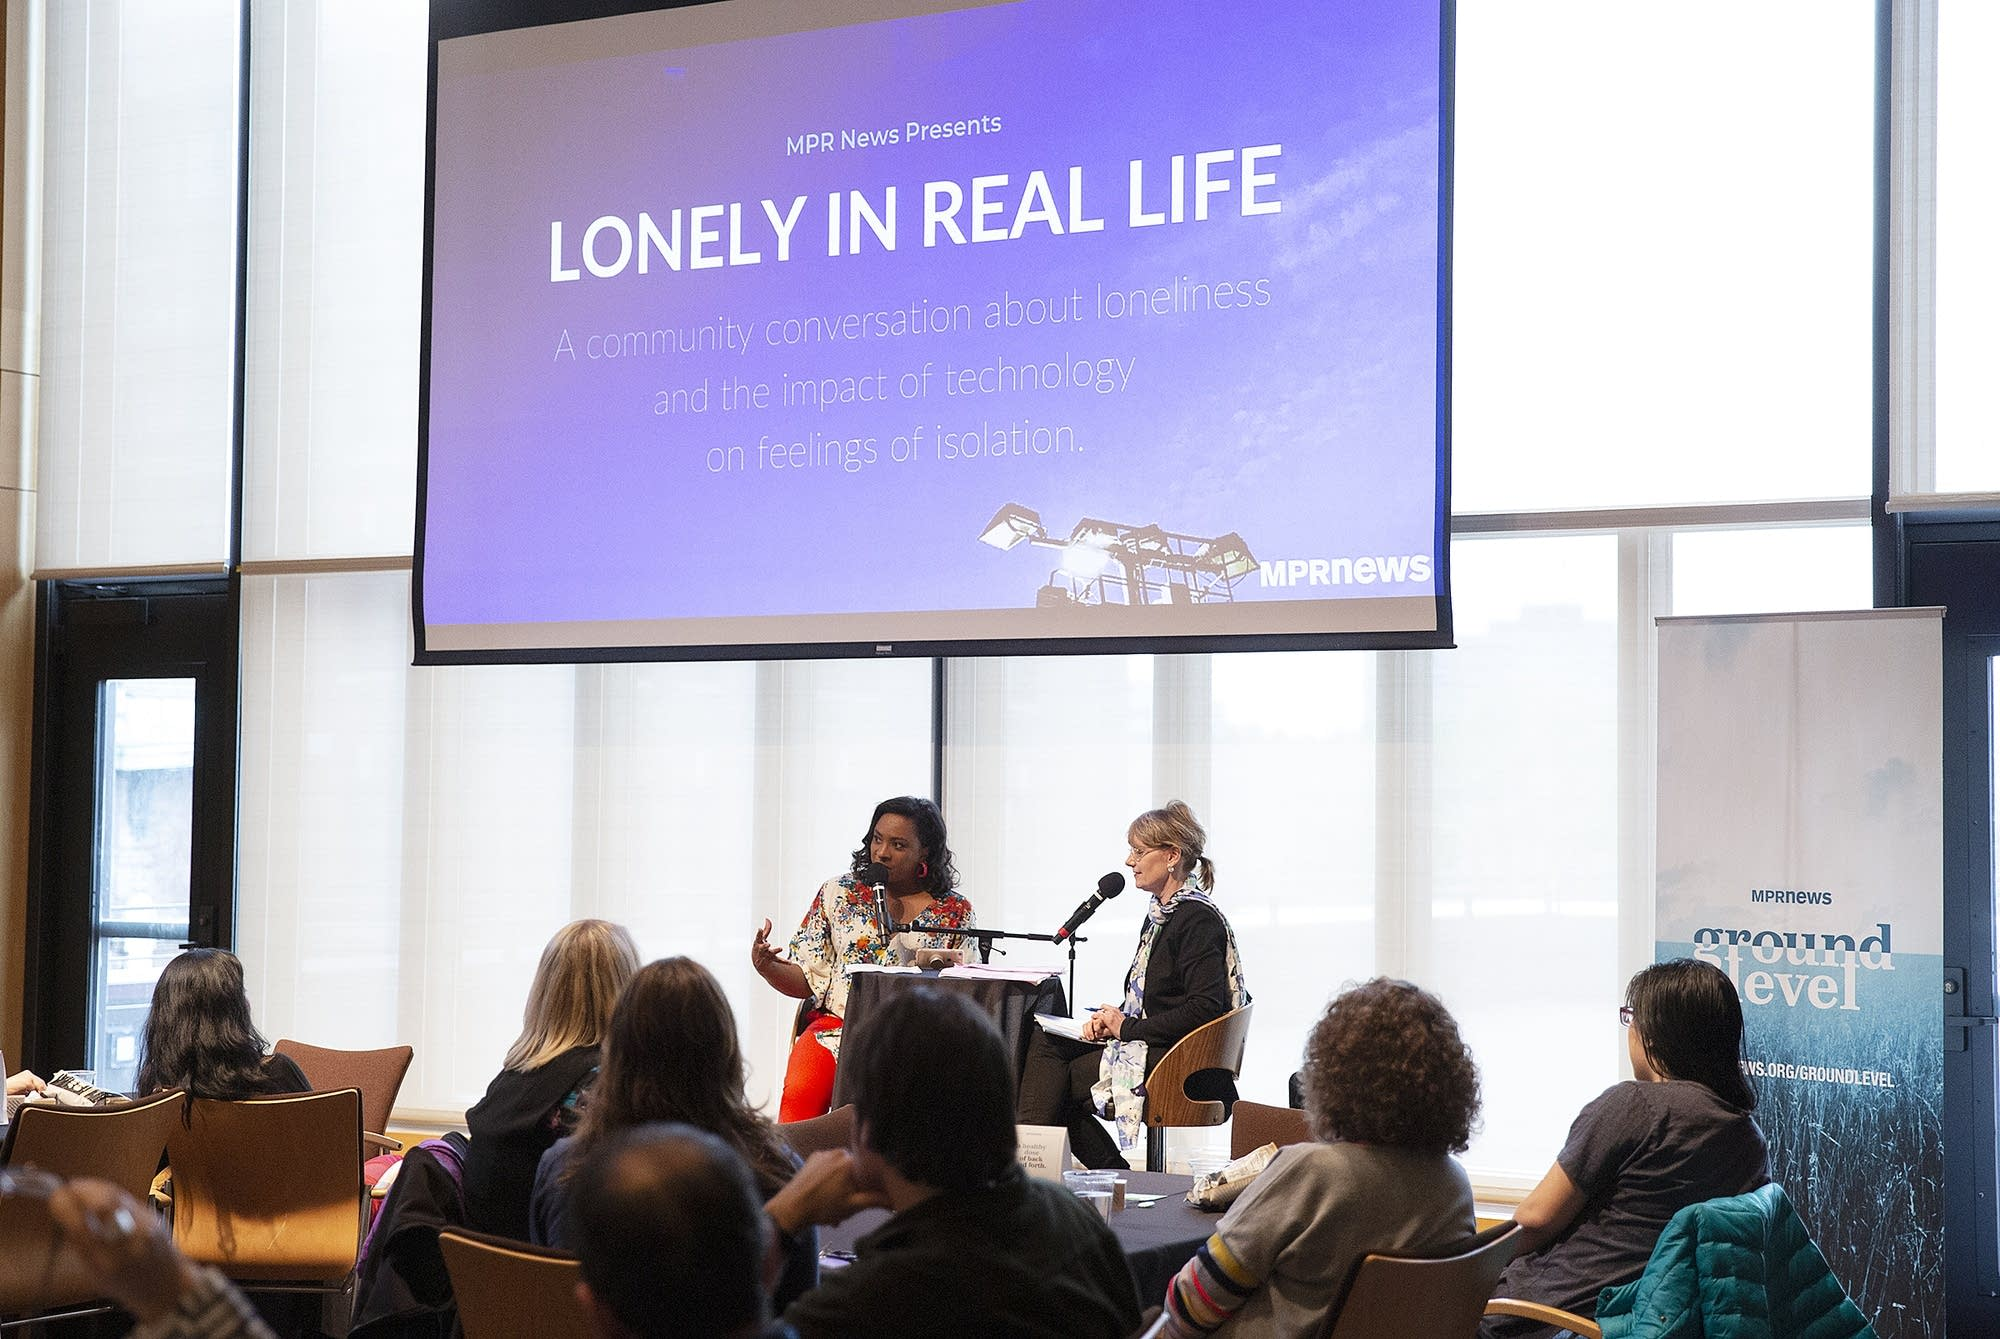 Angela Davis and Cheryl Bemel talk about loneliness and technology.